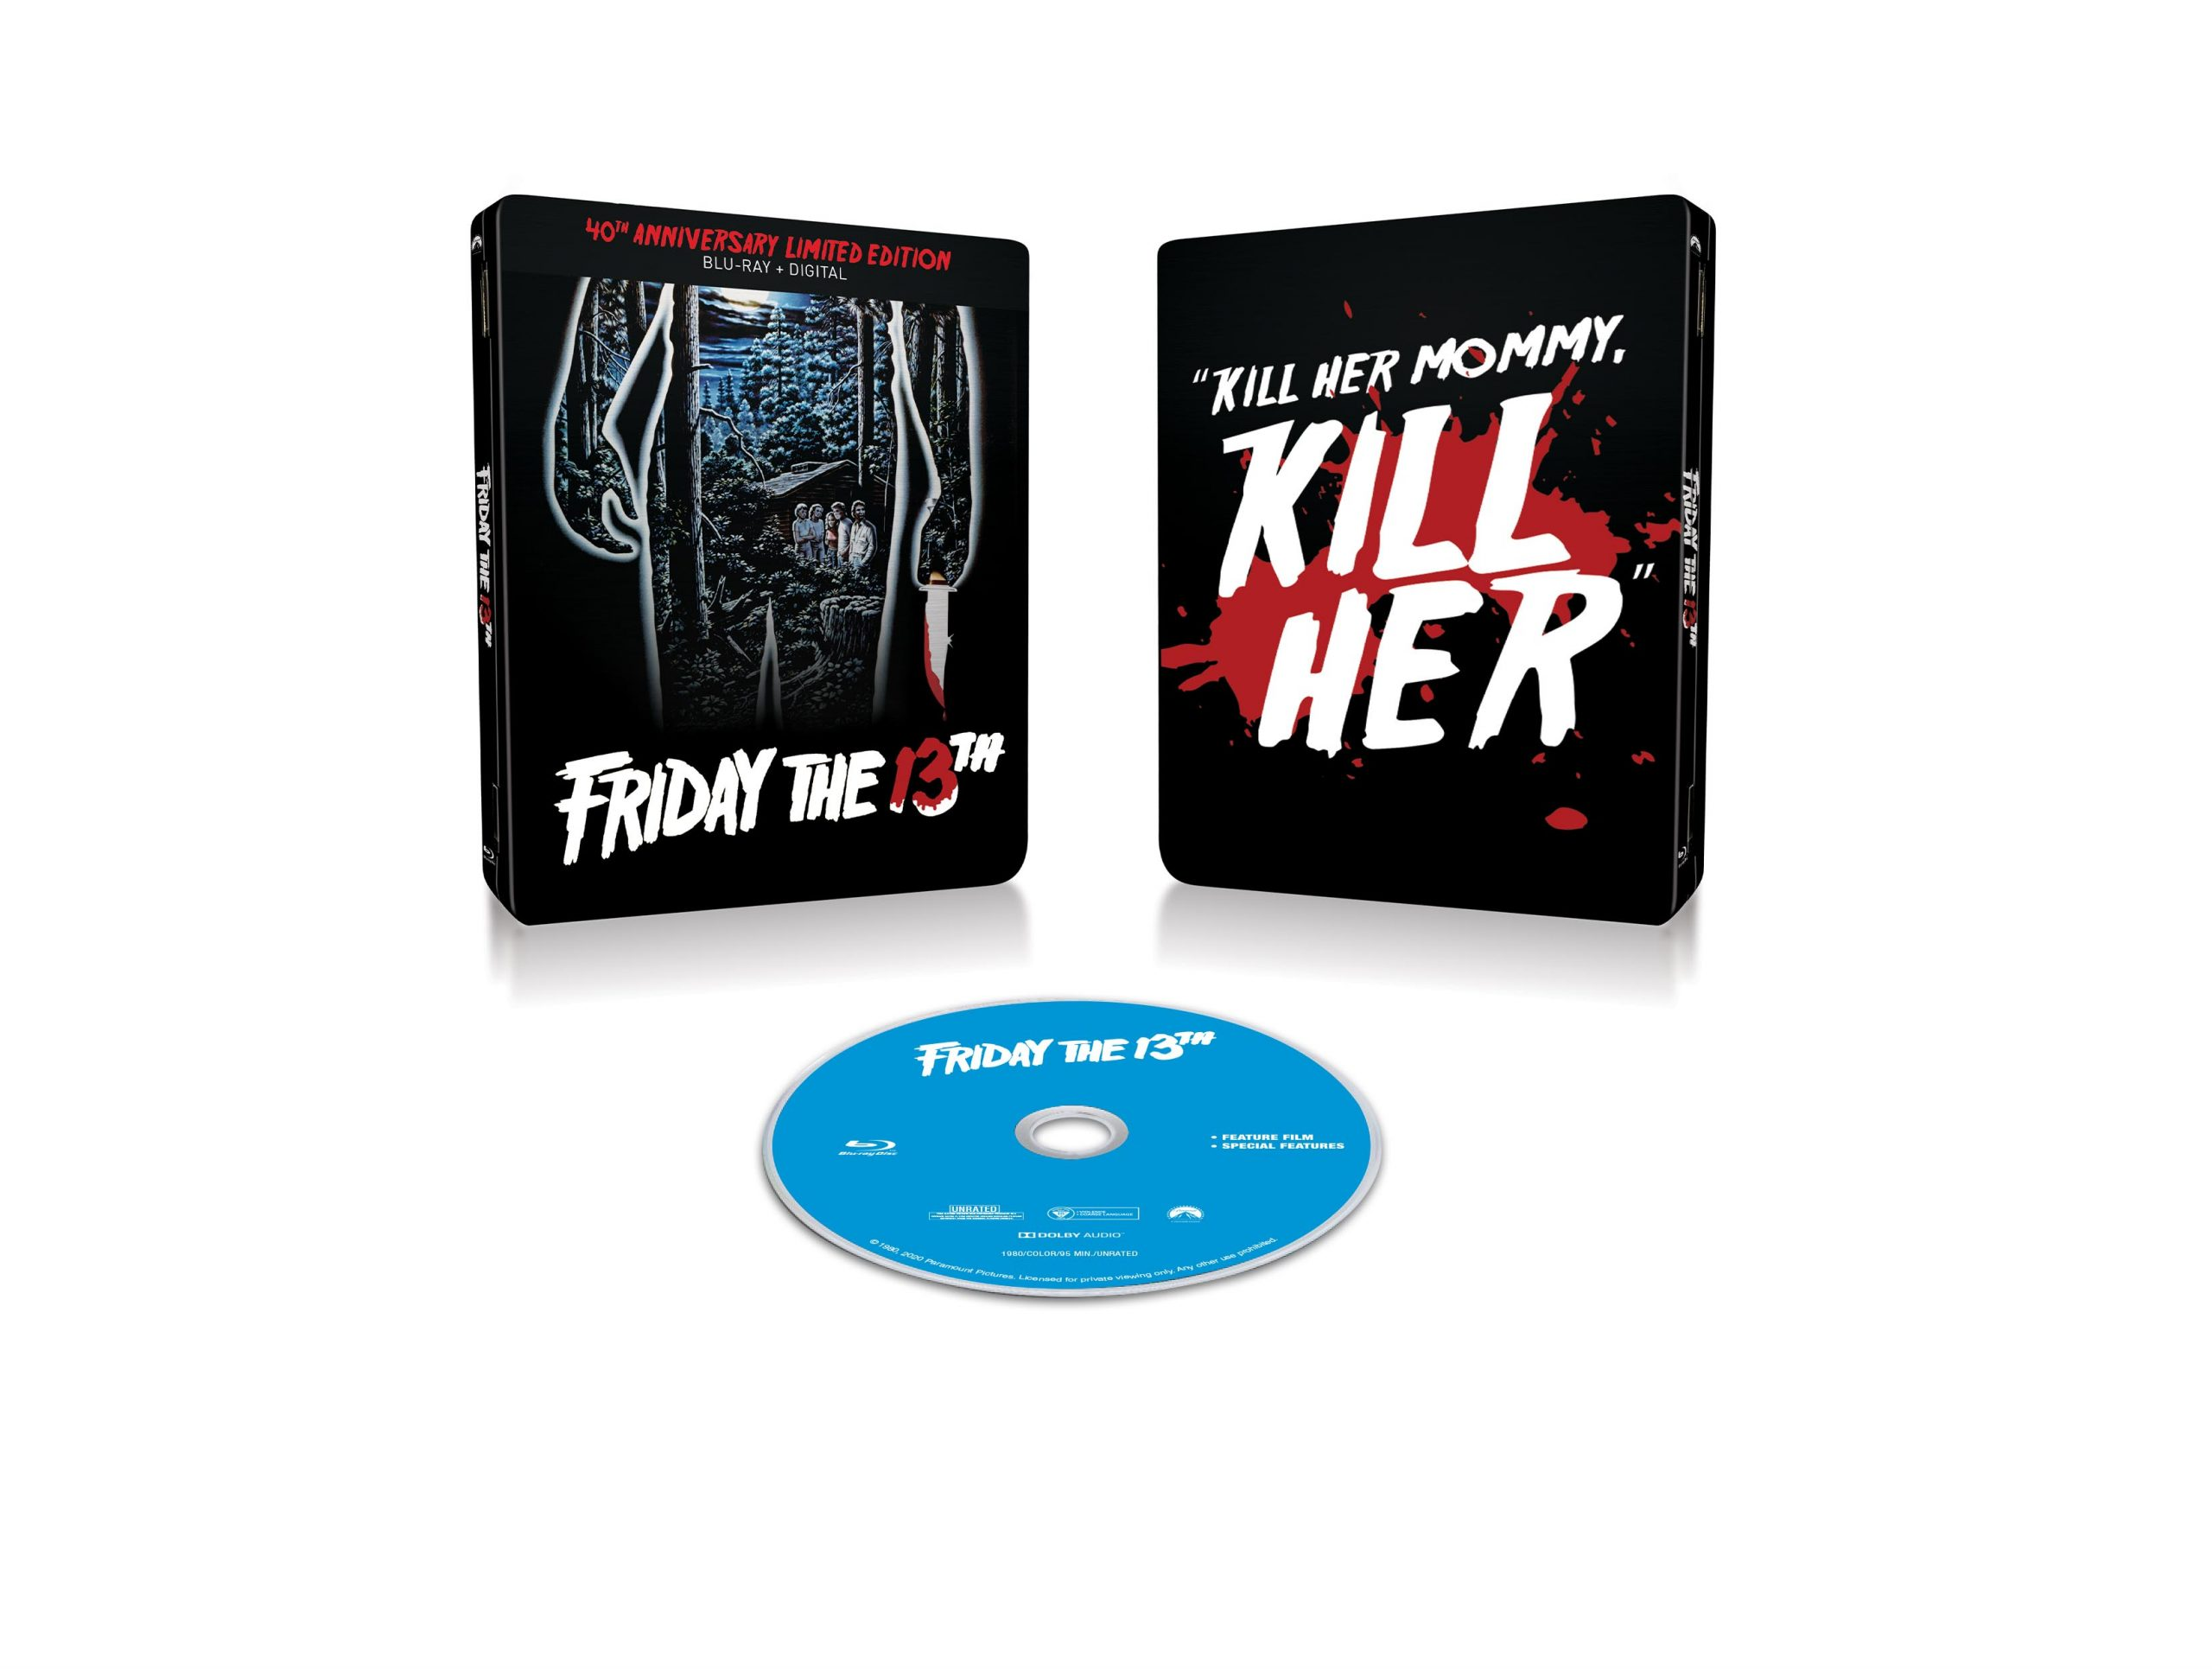 [News] FRIDAY THE 13TH Steelbook Coming This June